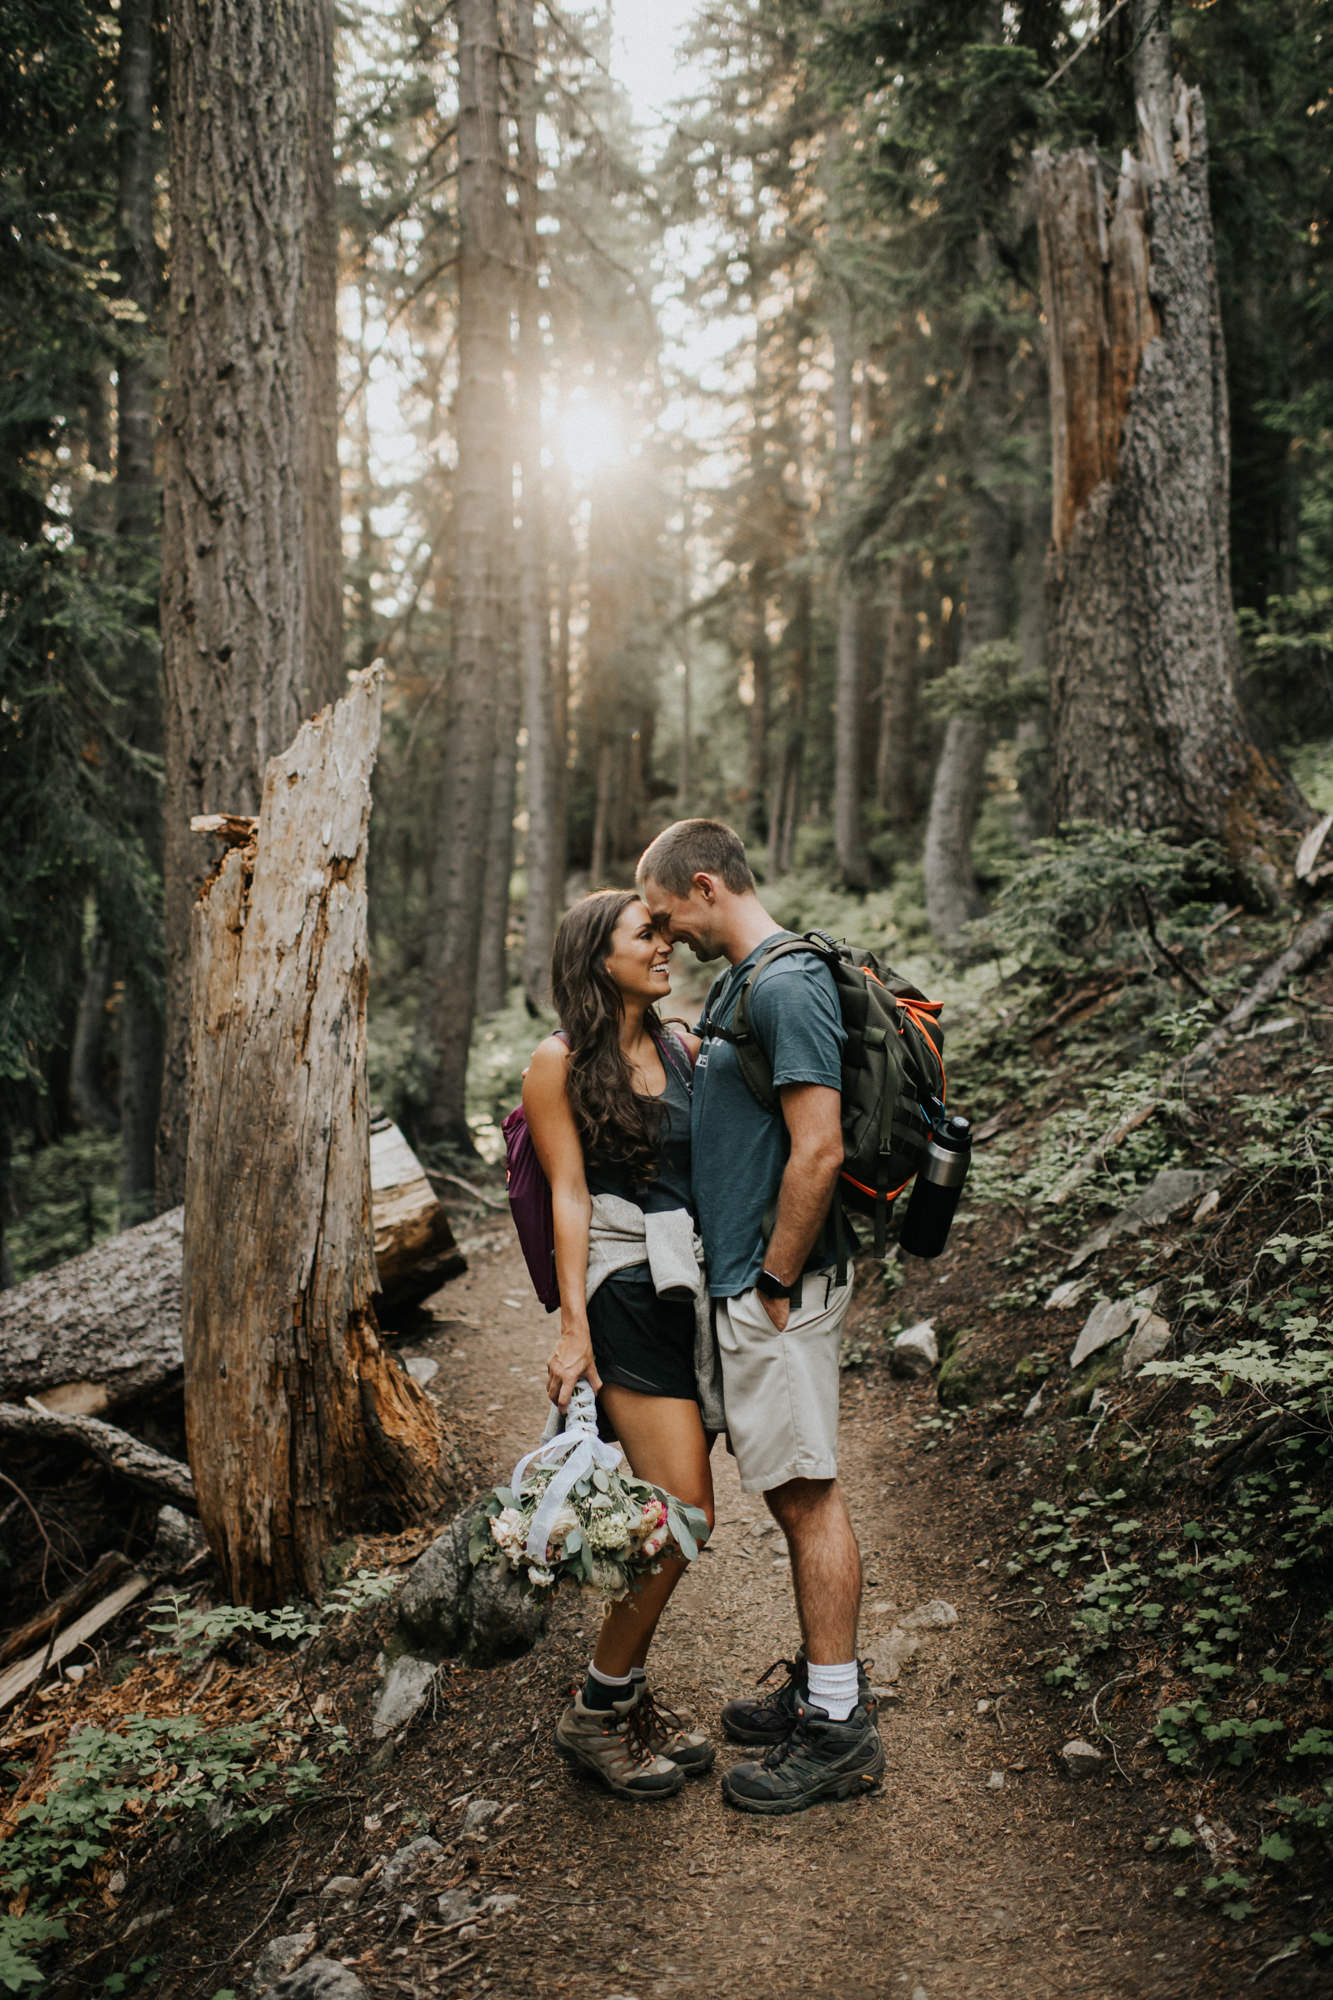 Couple kisses on the trail - Nick + Danee